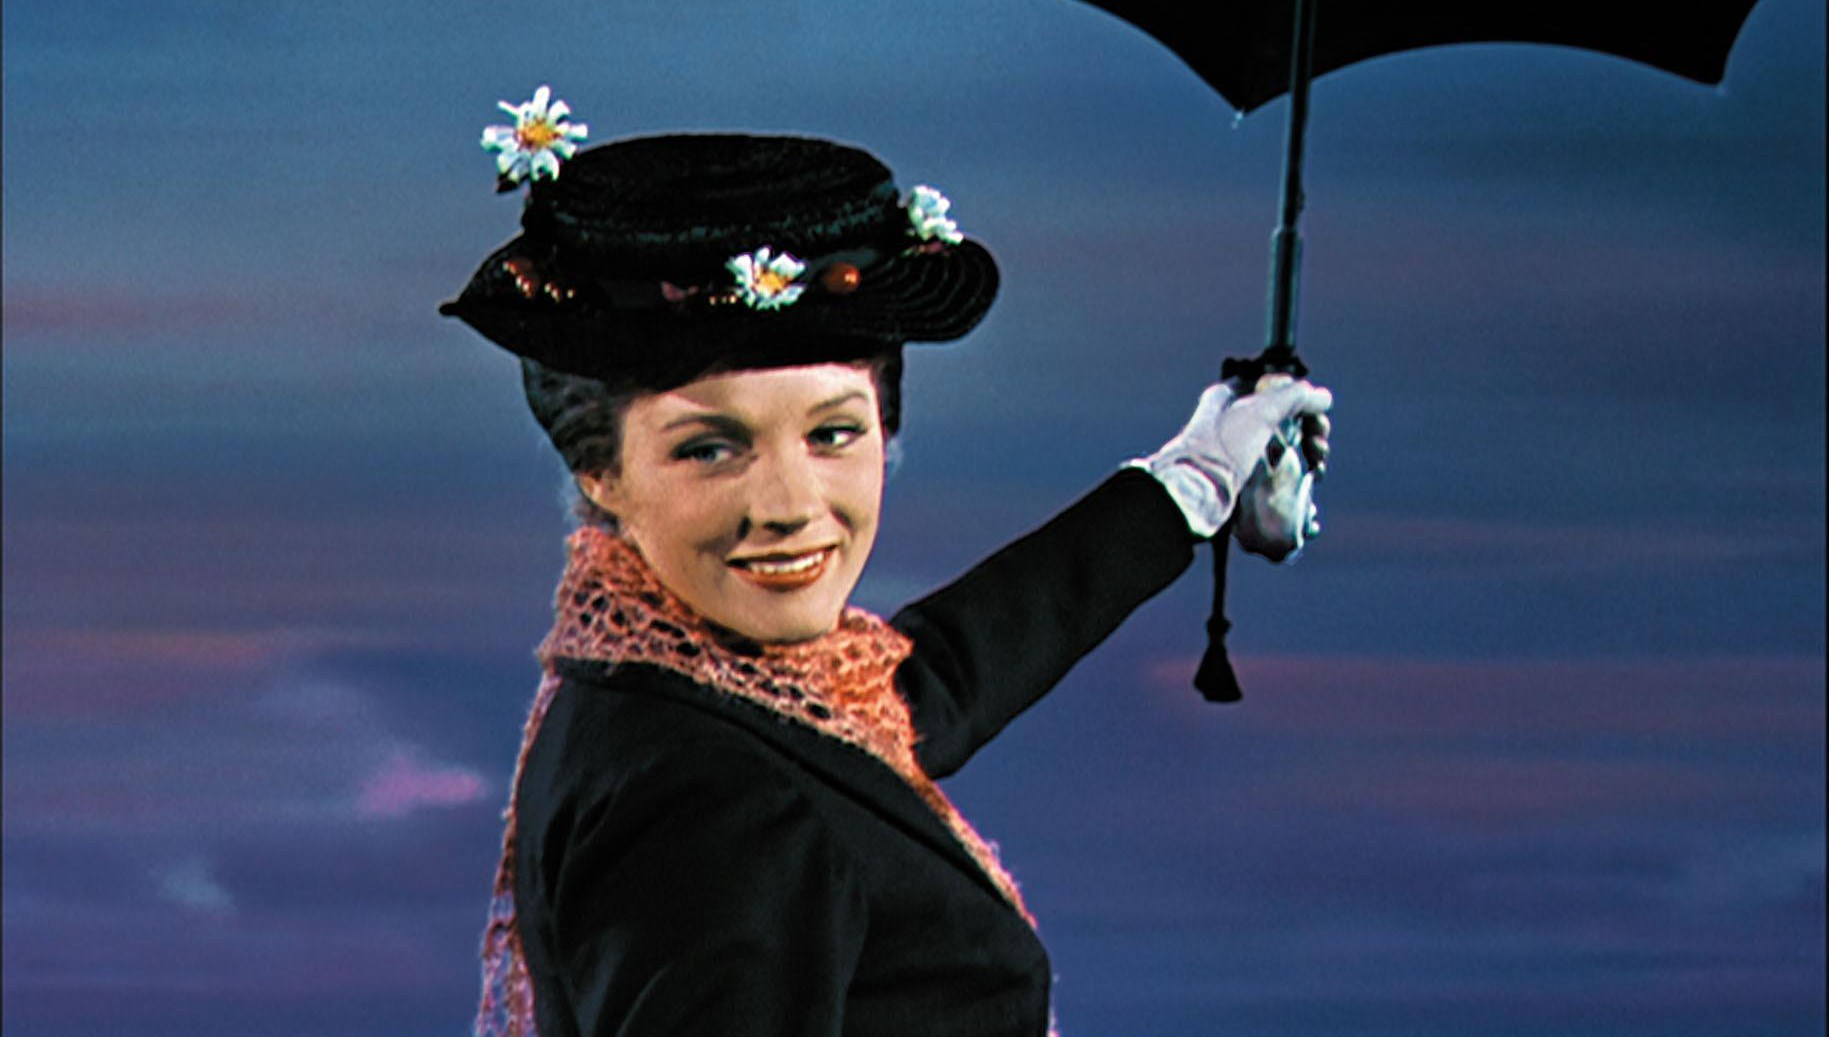 Julie Andrews 'nearly died' during an eye-watering accident on the set of Mary Poppins